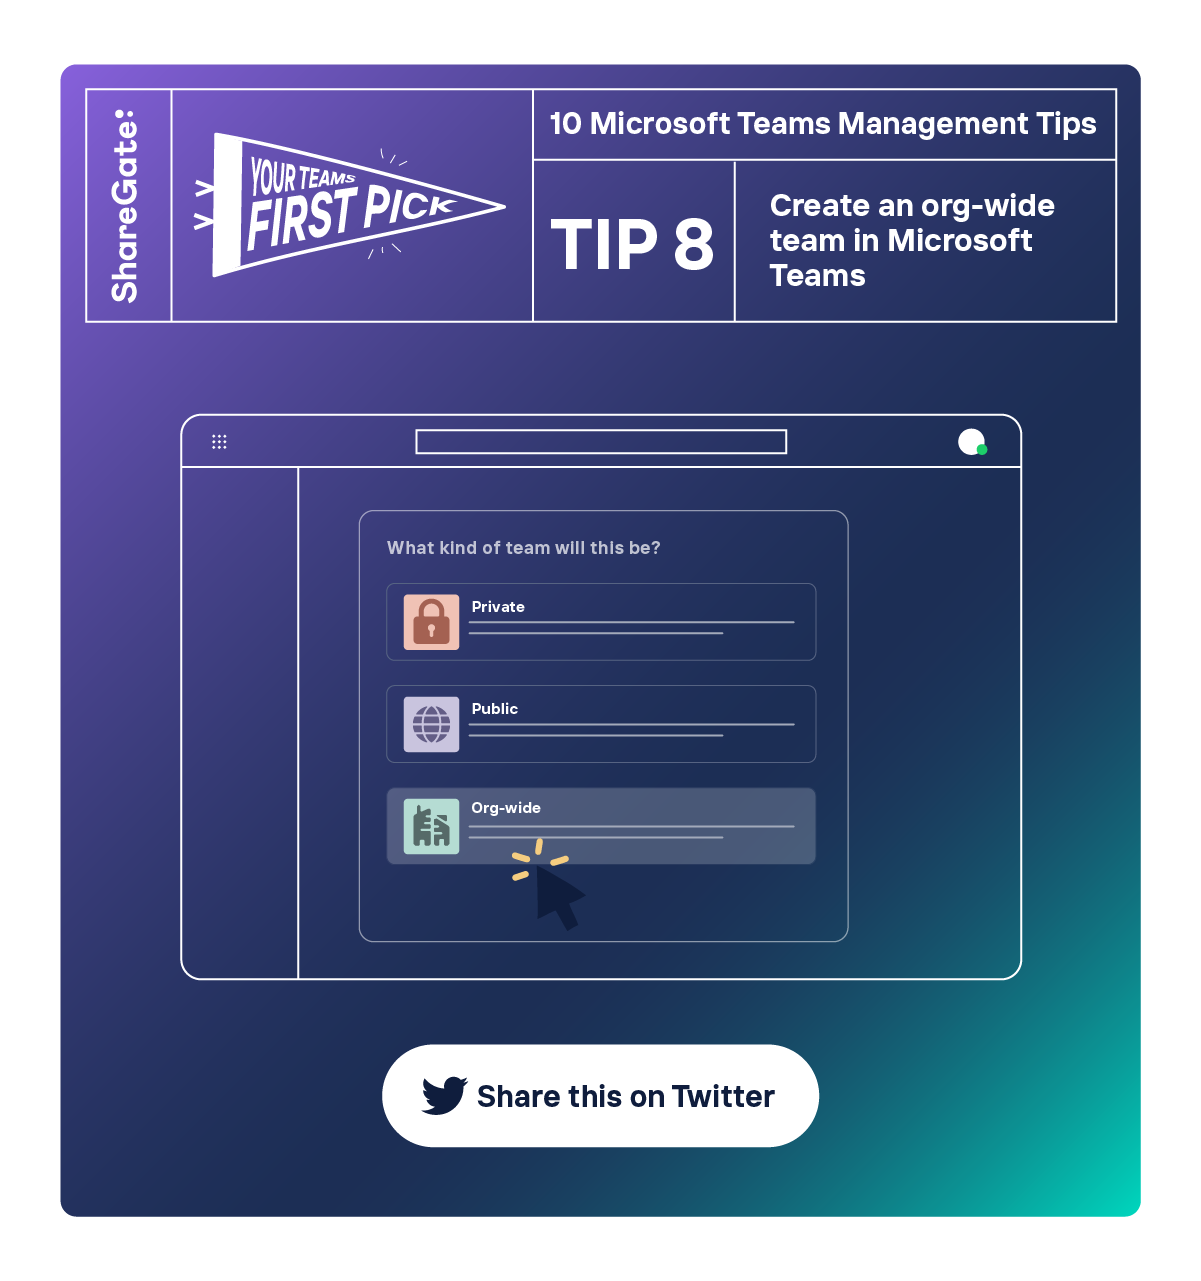 Illustrated infographic showing tip #8: Create an org-wide team in Microsoft Teams.